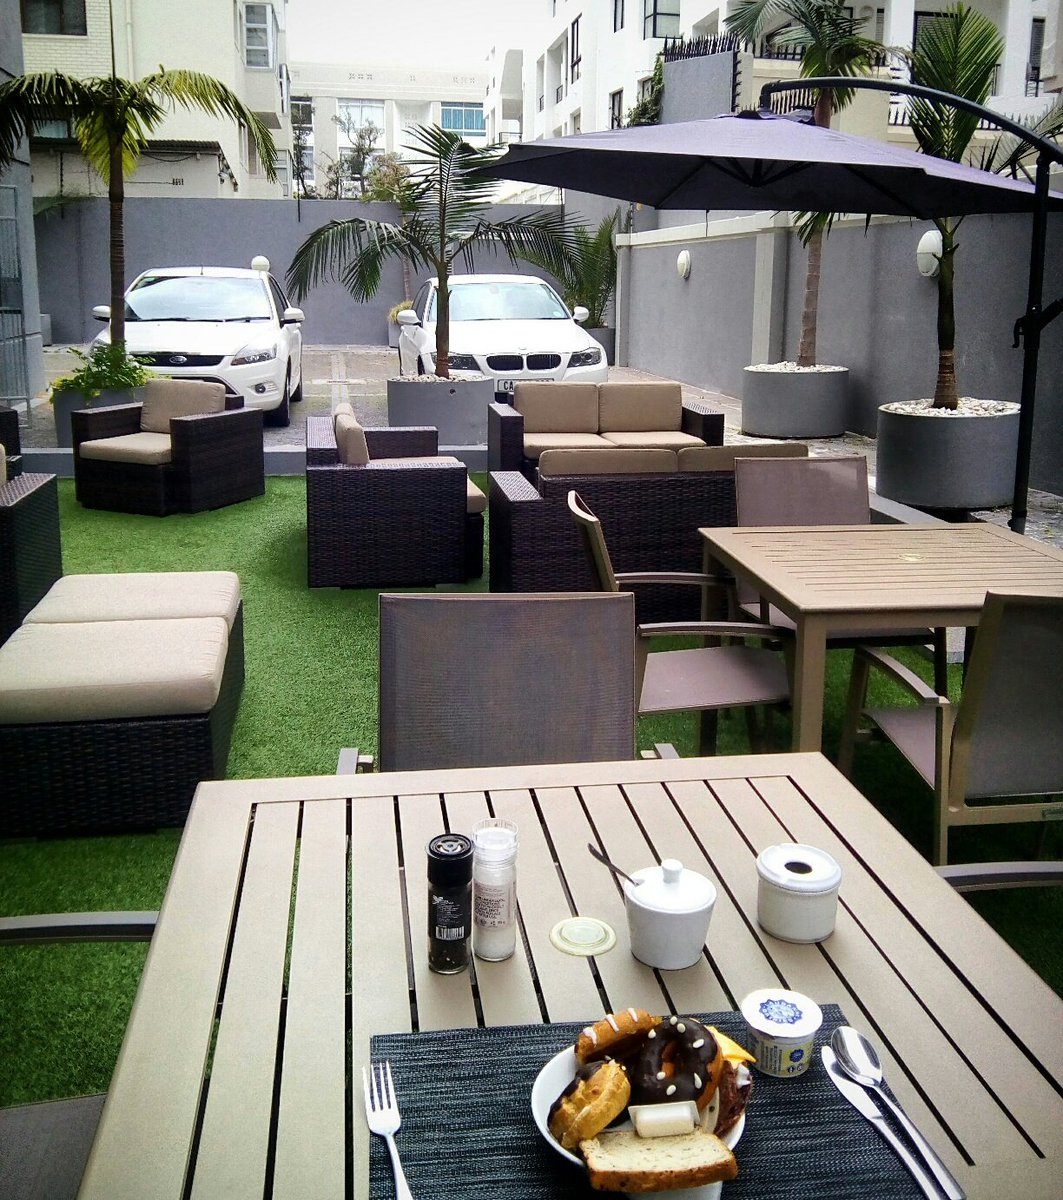 #Breakfast all fresco for one, perhaps...?!  #GlobalFoodChat #travel #food #CapeTown (pic @thehydehotel by @jamescapetown) <br>http://pic.twitter.com/b5ItnrqNgH